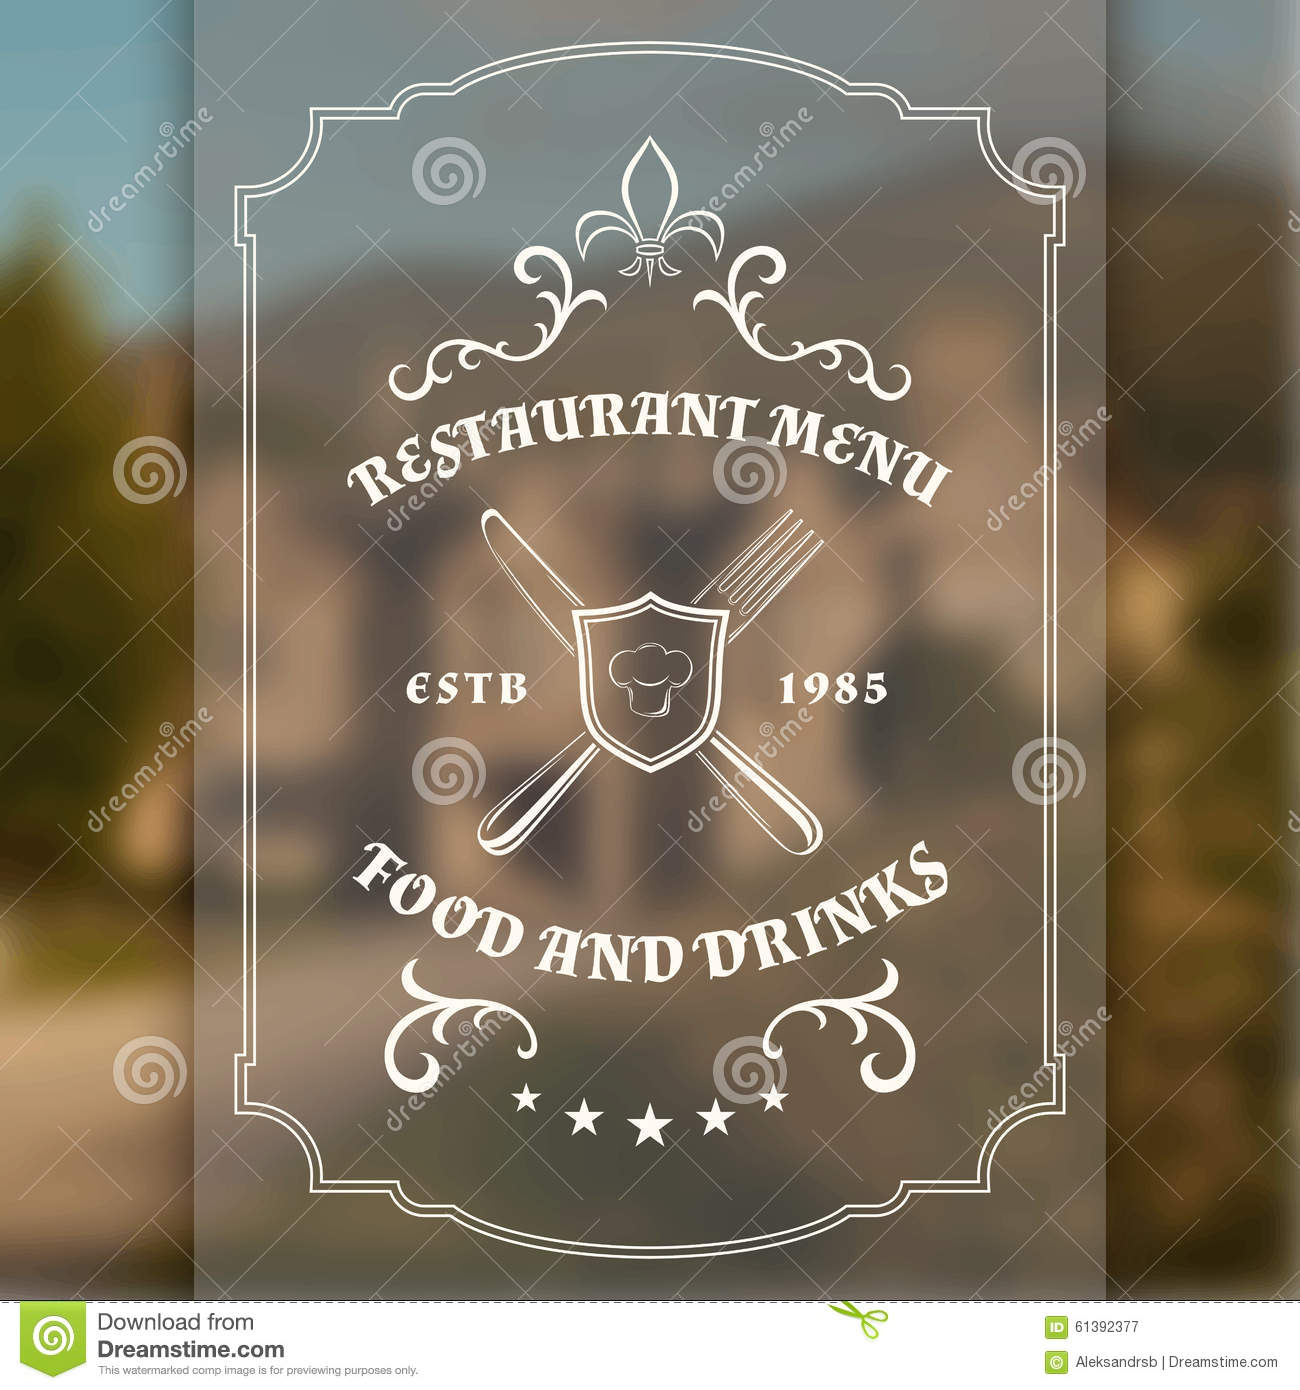 Vintage restaurant sign template stock vector   image: 55999215